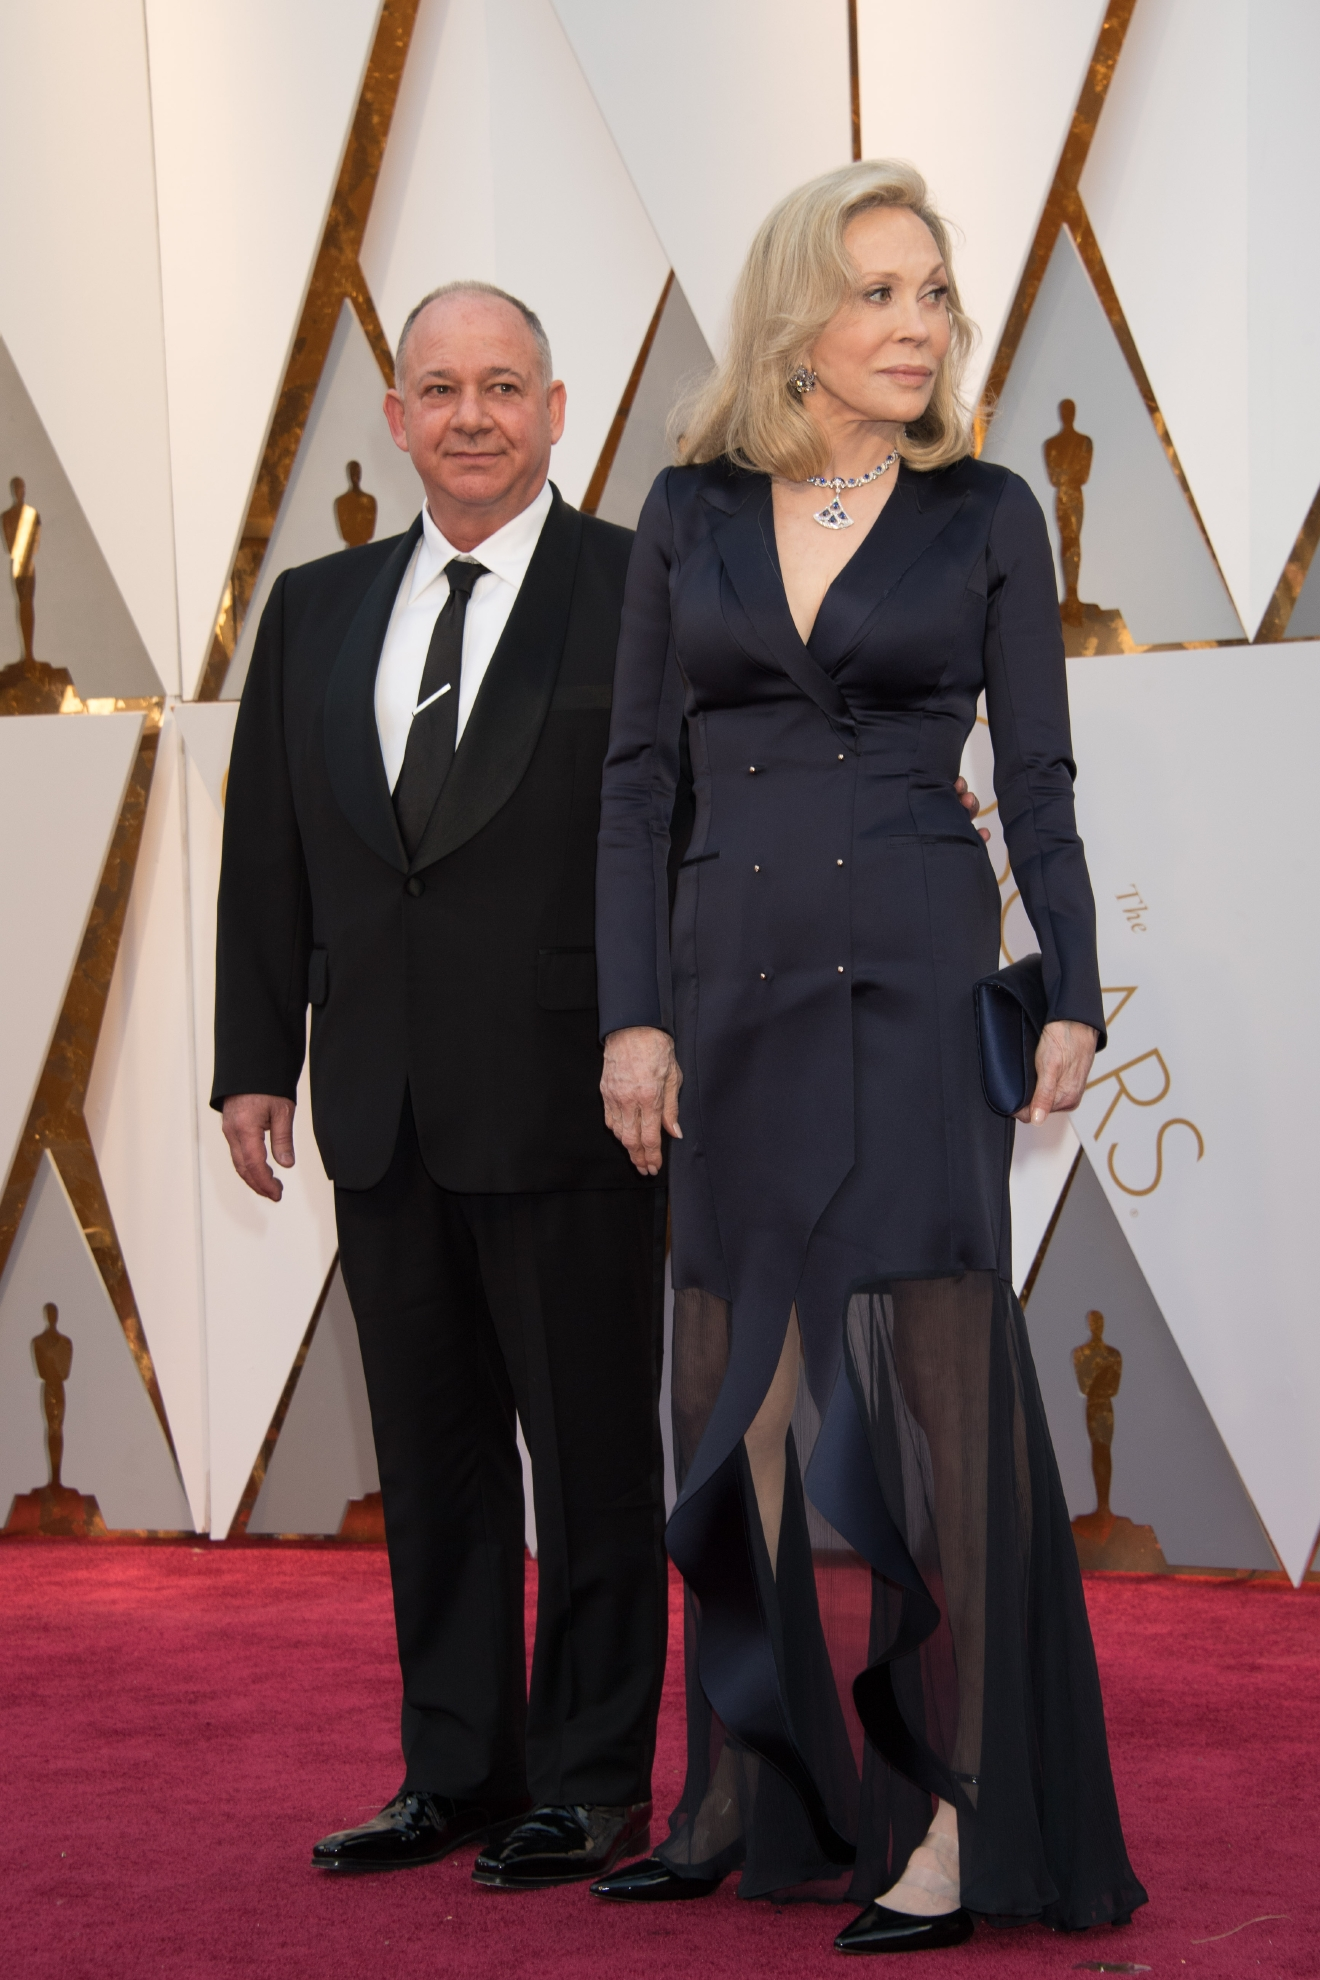 Guest and Faye Dunaway, presenter, arrive on the red carpet of The 89th Oscars® at the Dolby® Theatre in Hollywood, CA on Sunday, February 26, 2017. (A.M.P.A.S.)